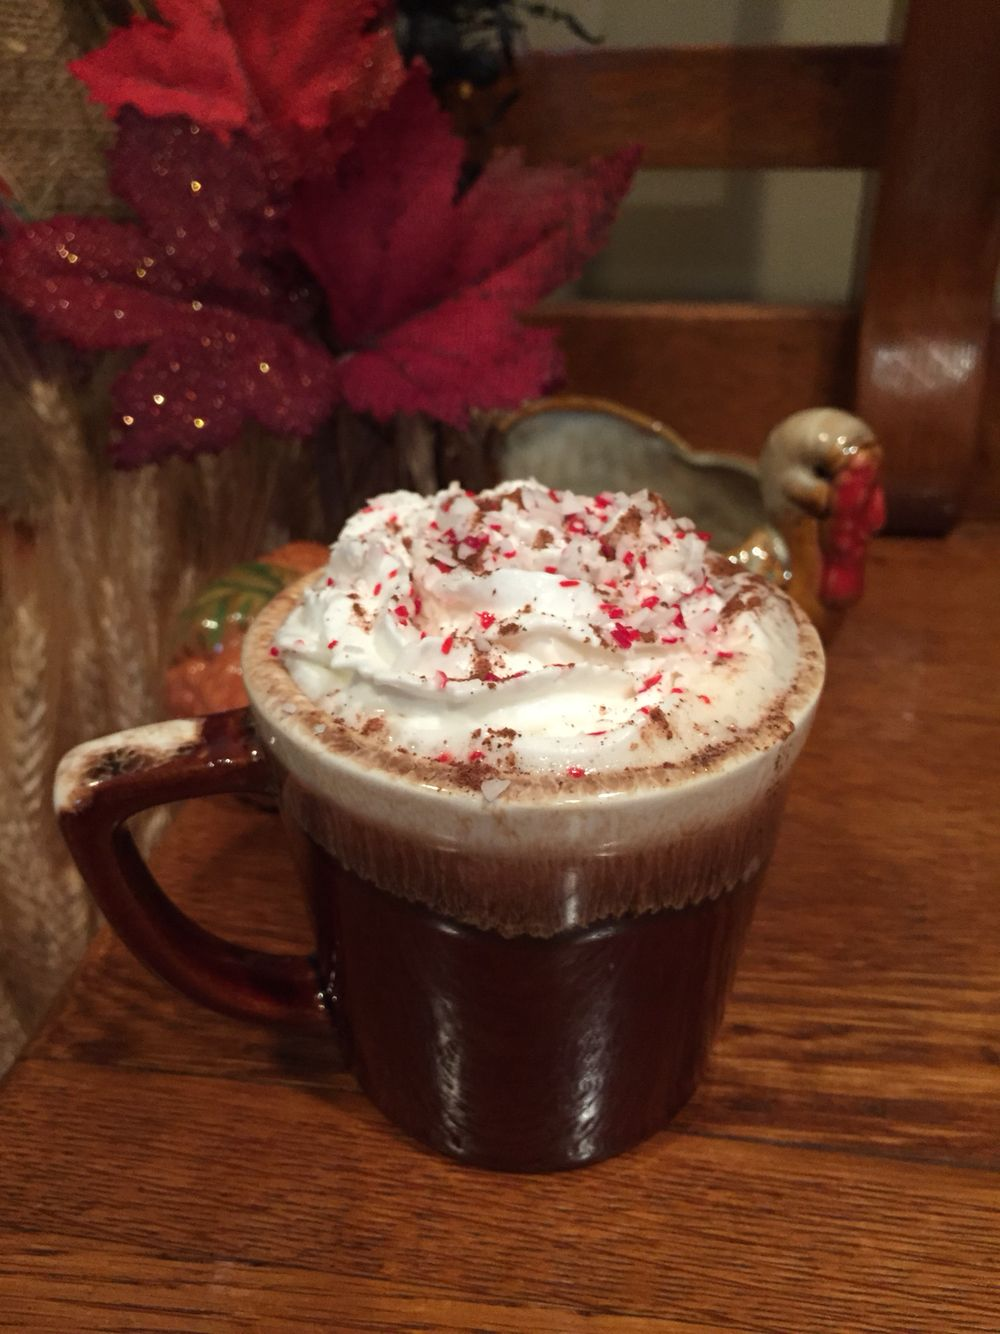 Our holiday coffee. Add favorite creamer. Top with whipped